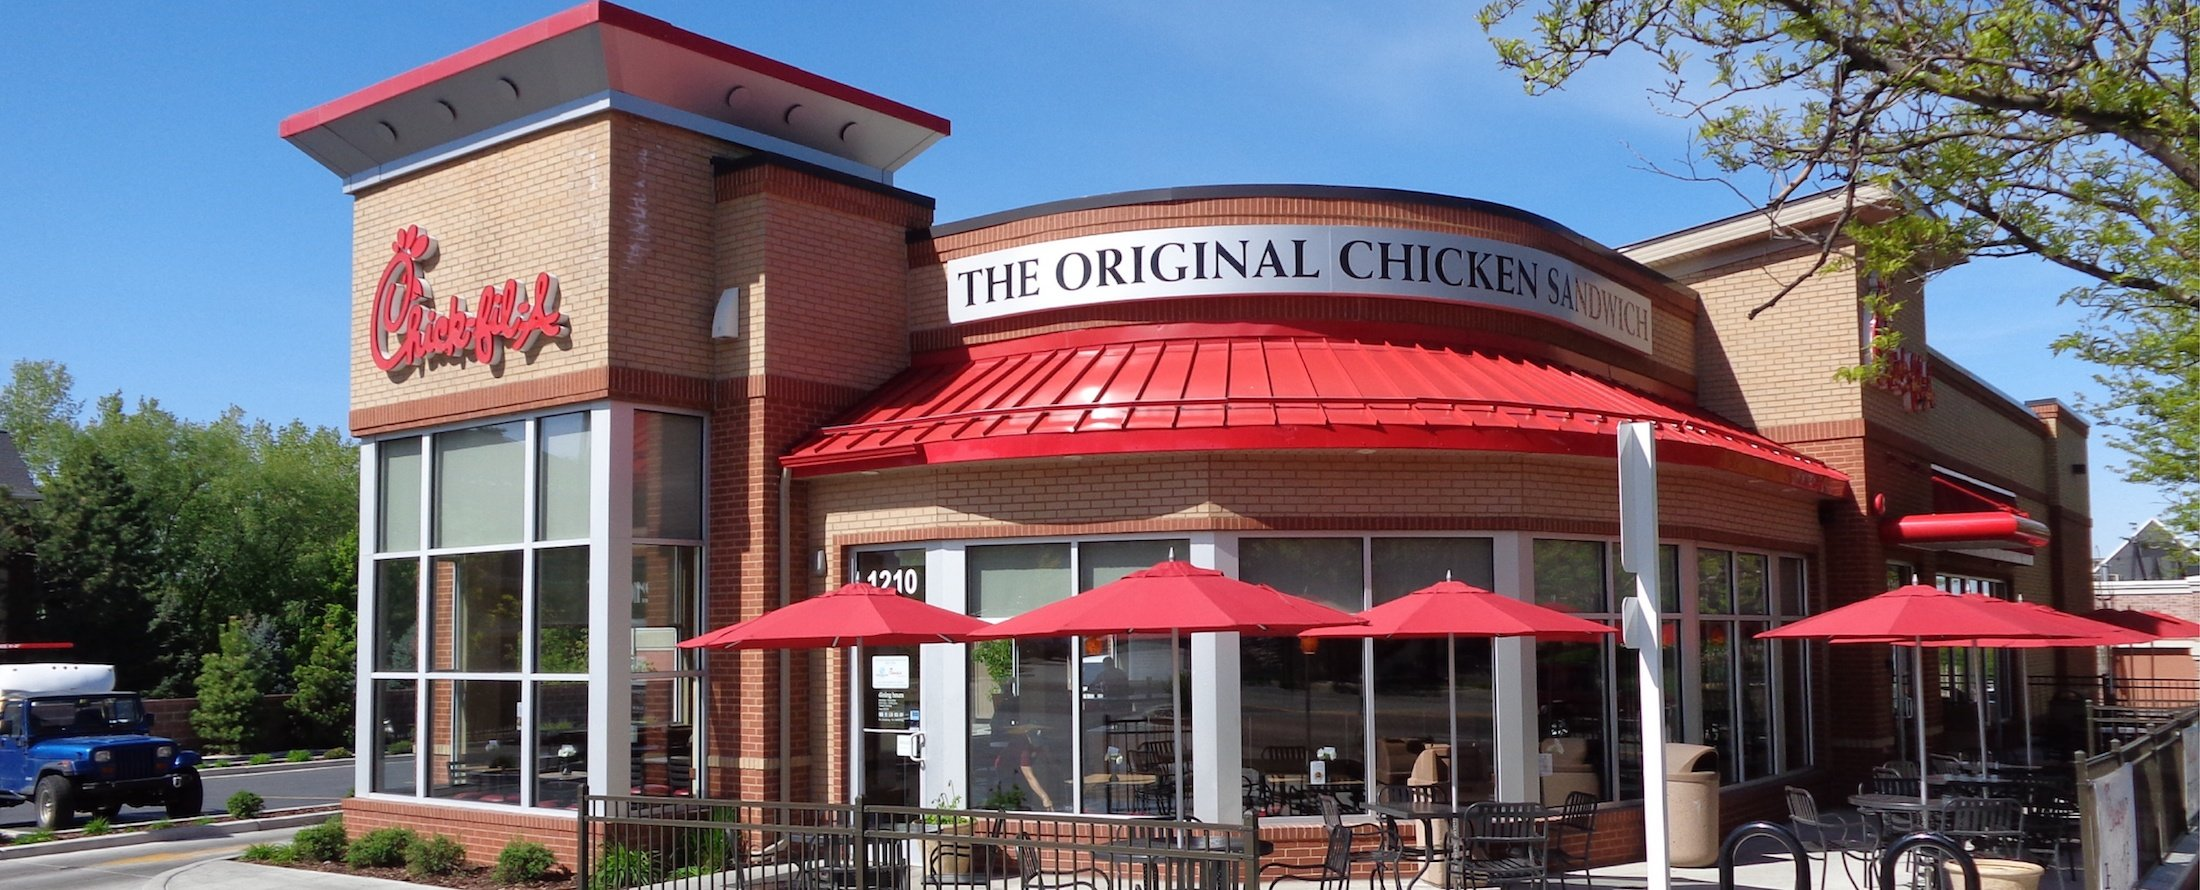 Lessons Learned From Chic Fil A